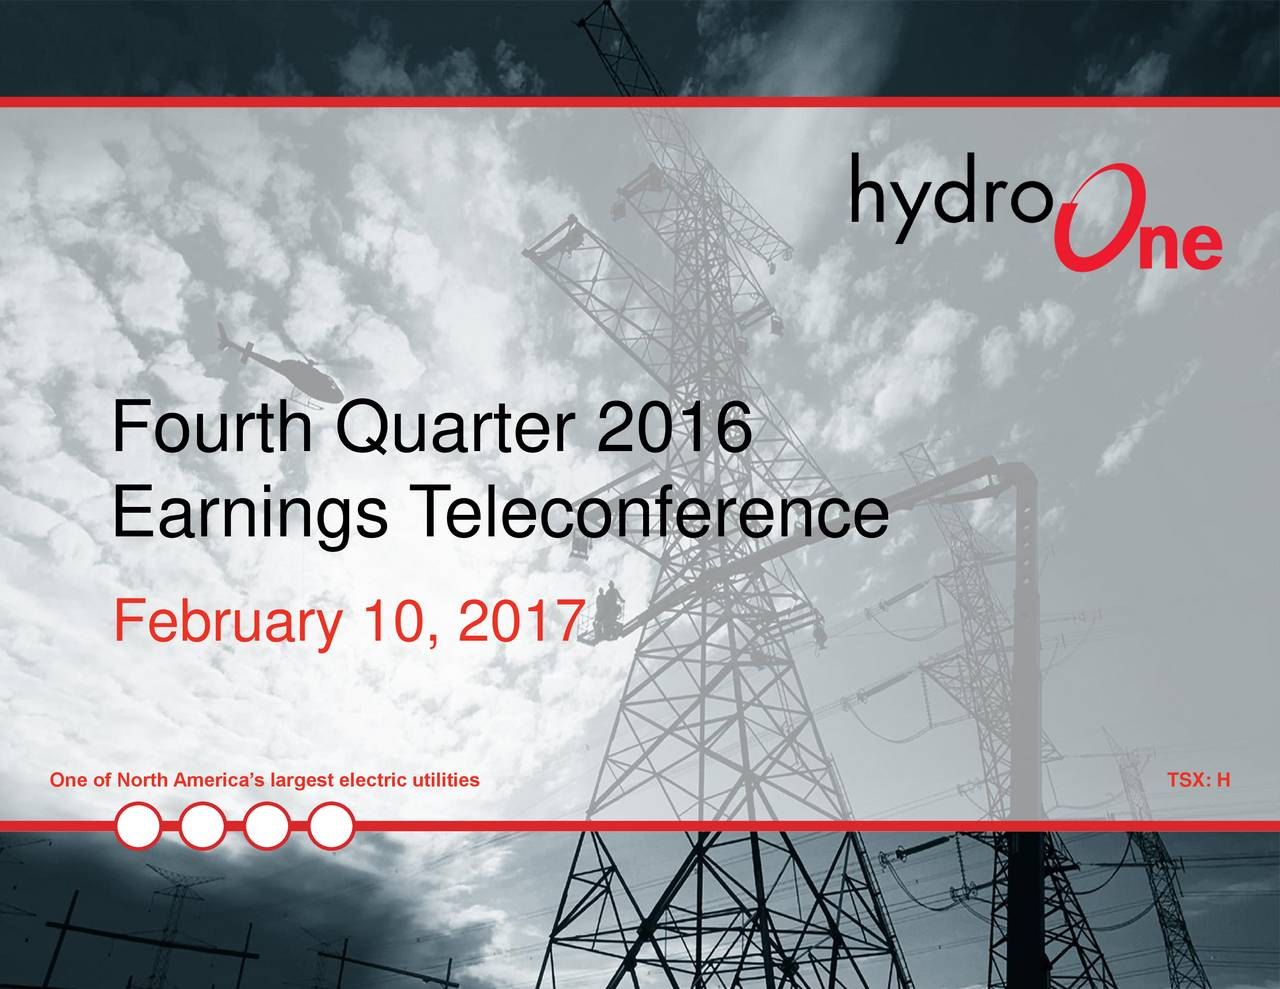 Earnings T eleconference February 10, 2017 One of North Americas largest electric utilitTSX: H